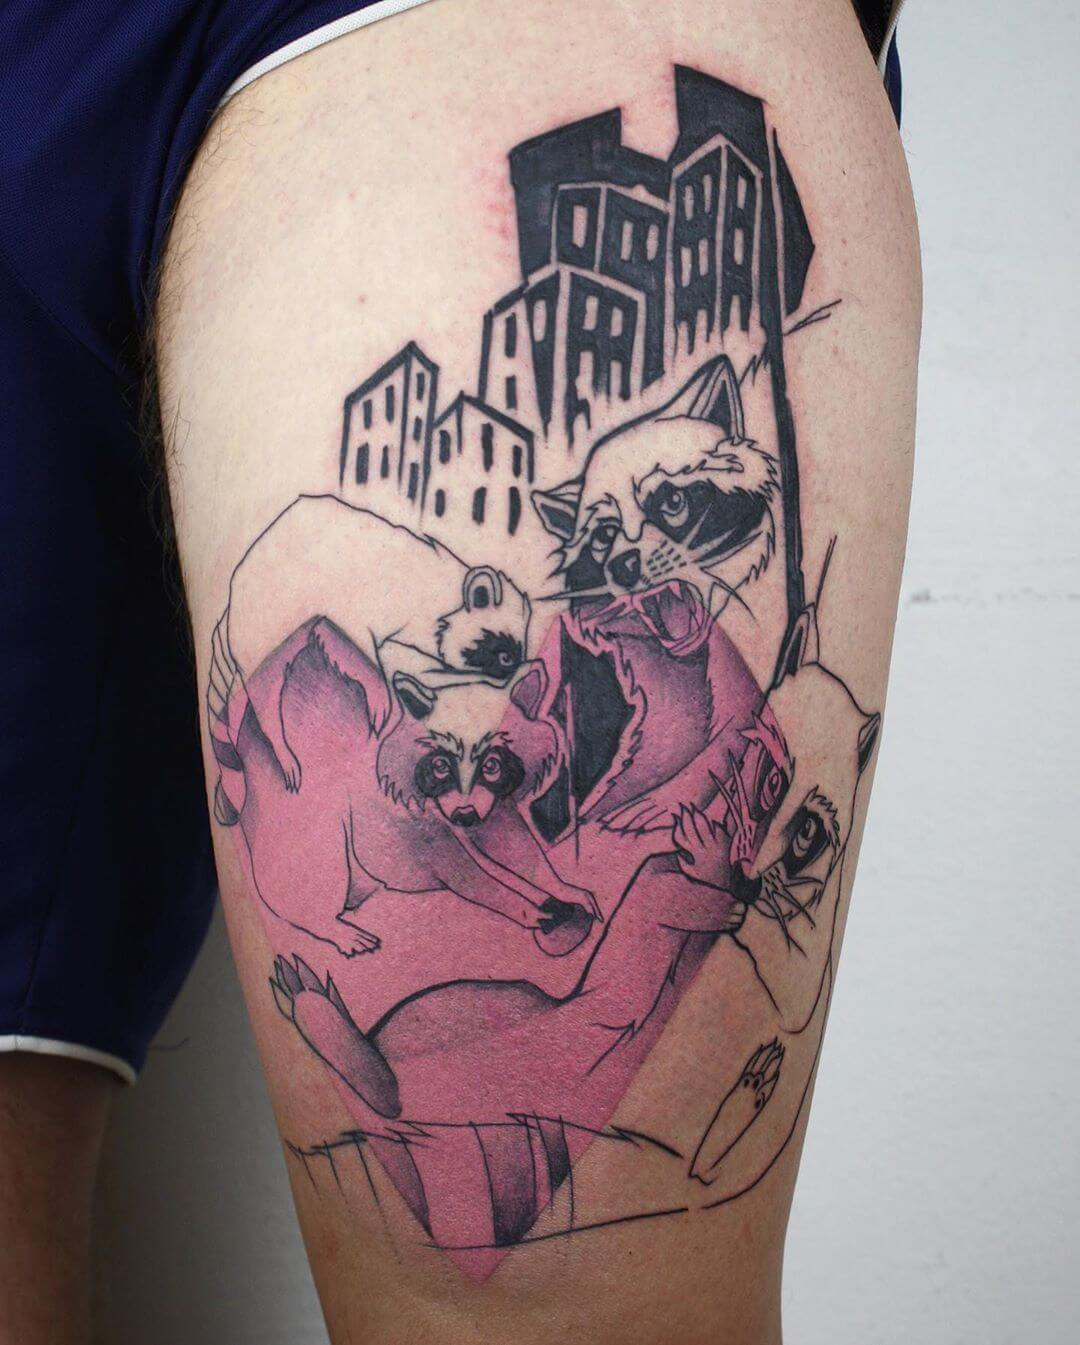 Tattoo Stil: Illustrativ